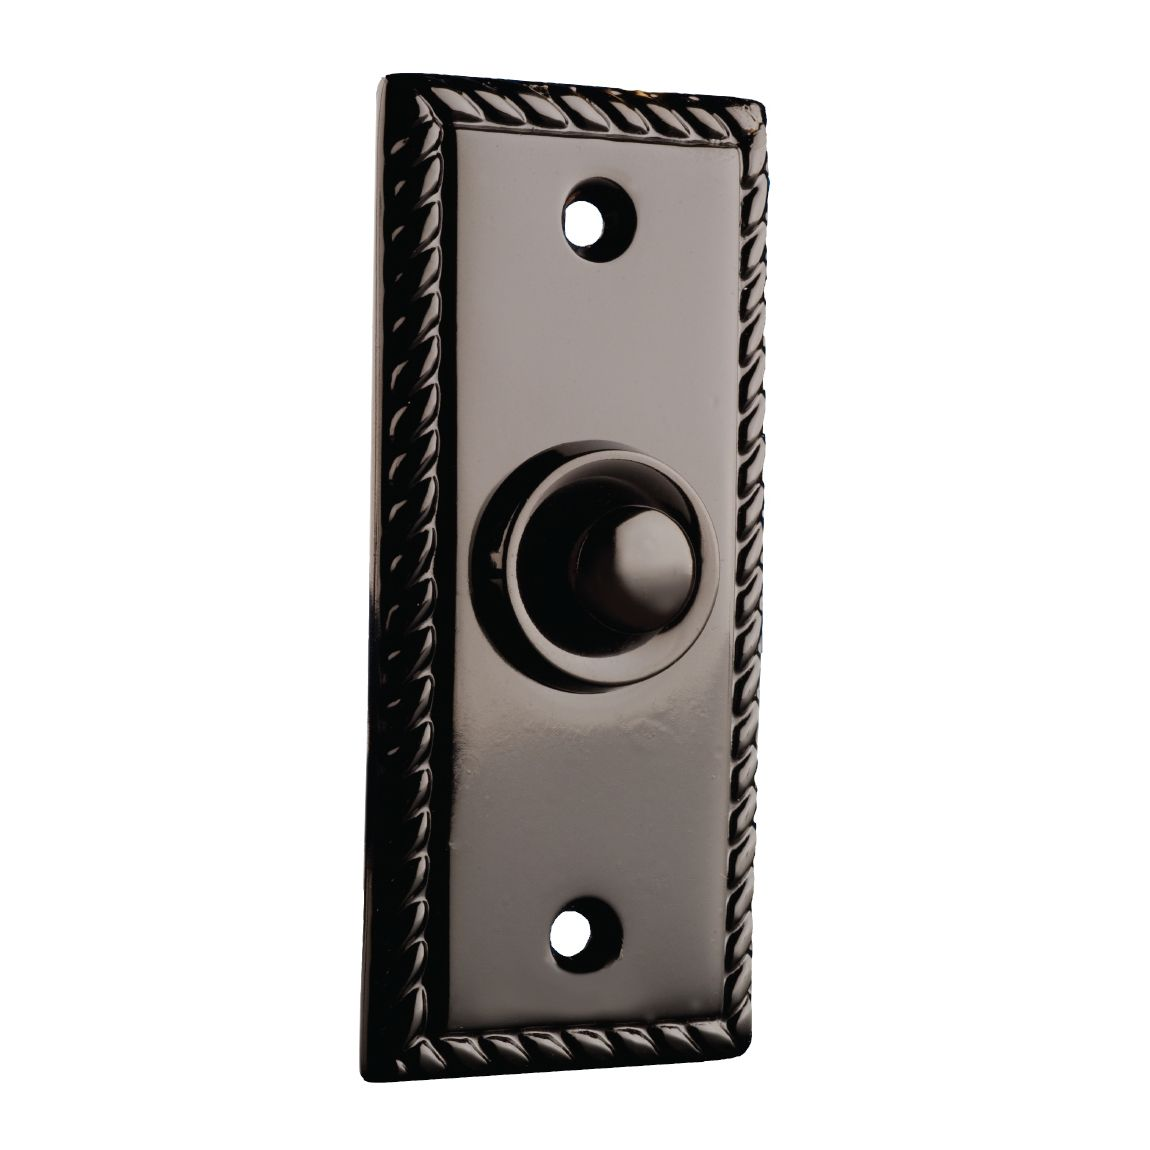 Shop Byron Doorbells of Distinction Byron Doorbells 2205 Georgian Recessed Bell Push Doorbell Button at ATG Stores. Browse our doorbell buttons ...  sc 1 st  Pinterest & Shop Byron Doorbells of Distinction Byron Doorbells 2205 Georgian ...